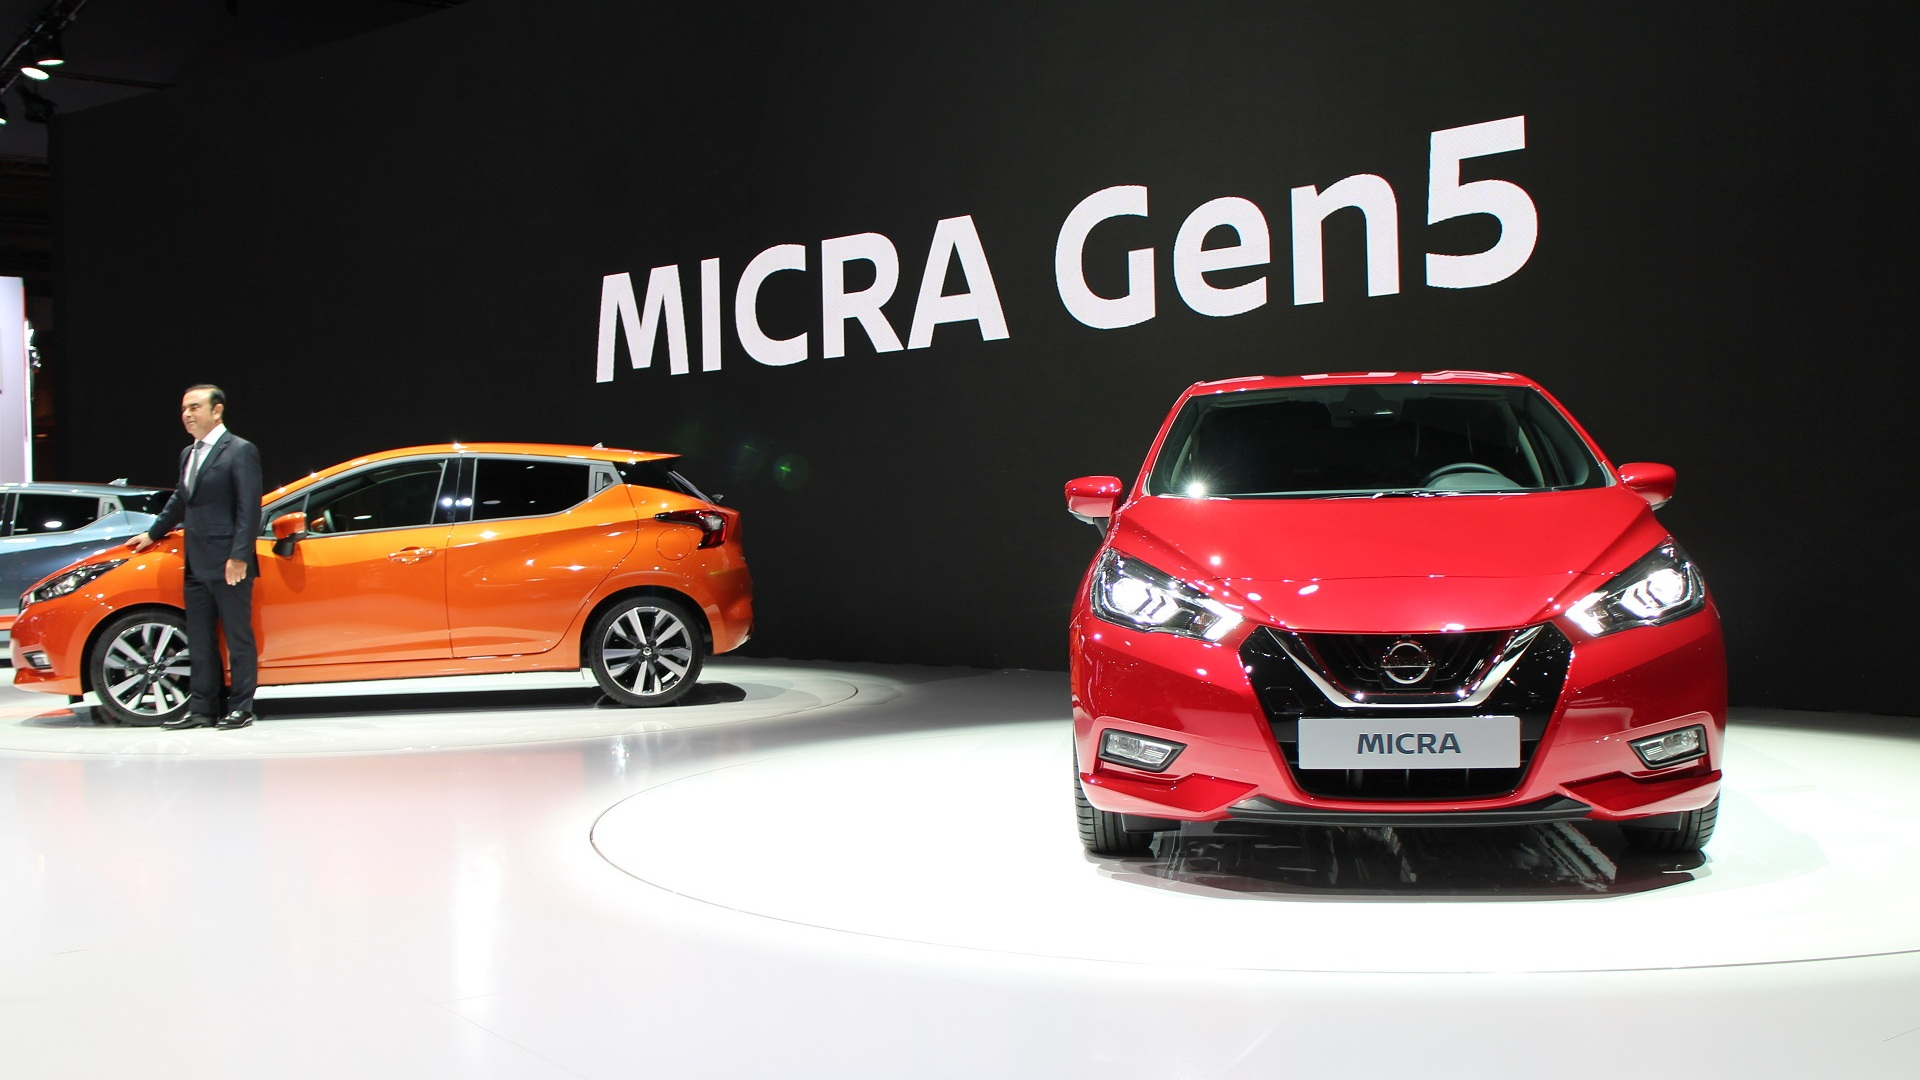 Nissan CEO Carlos Ghosn presents fifth-generation Nissan Micra at launch, 2016 Paris Motor Show